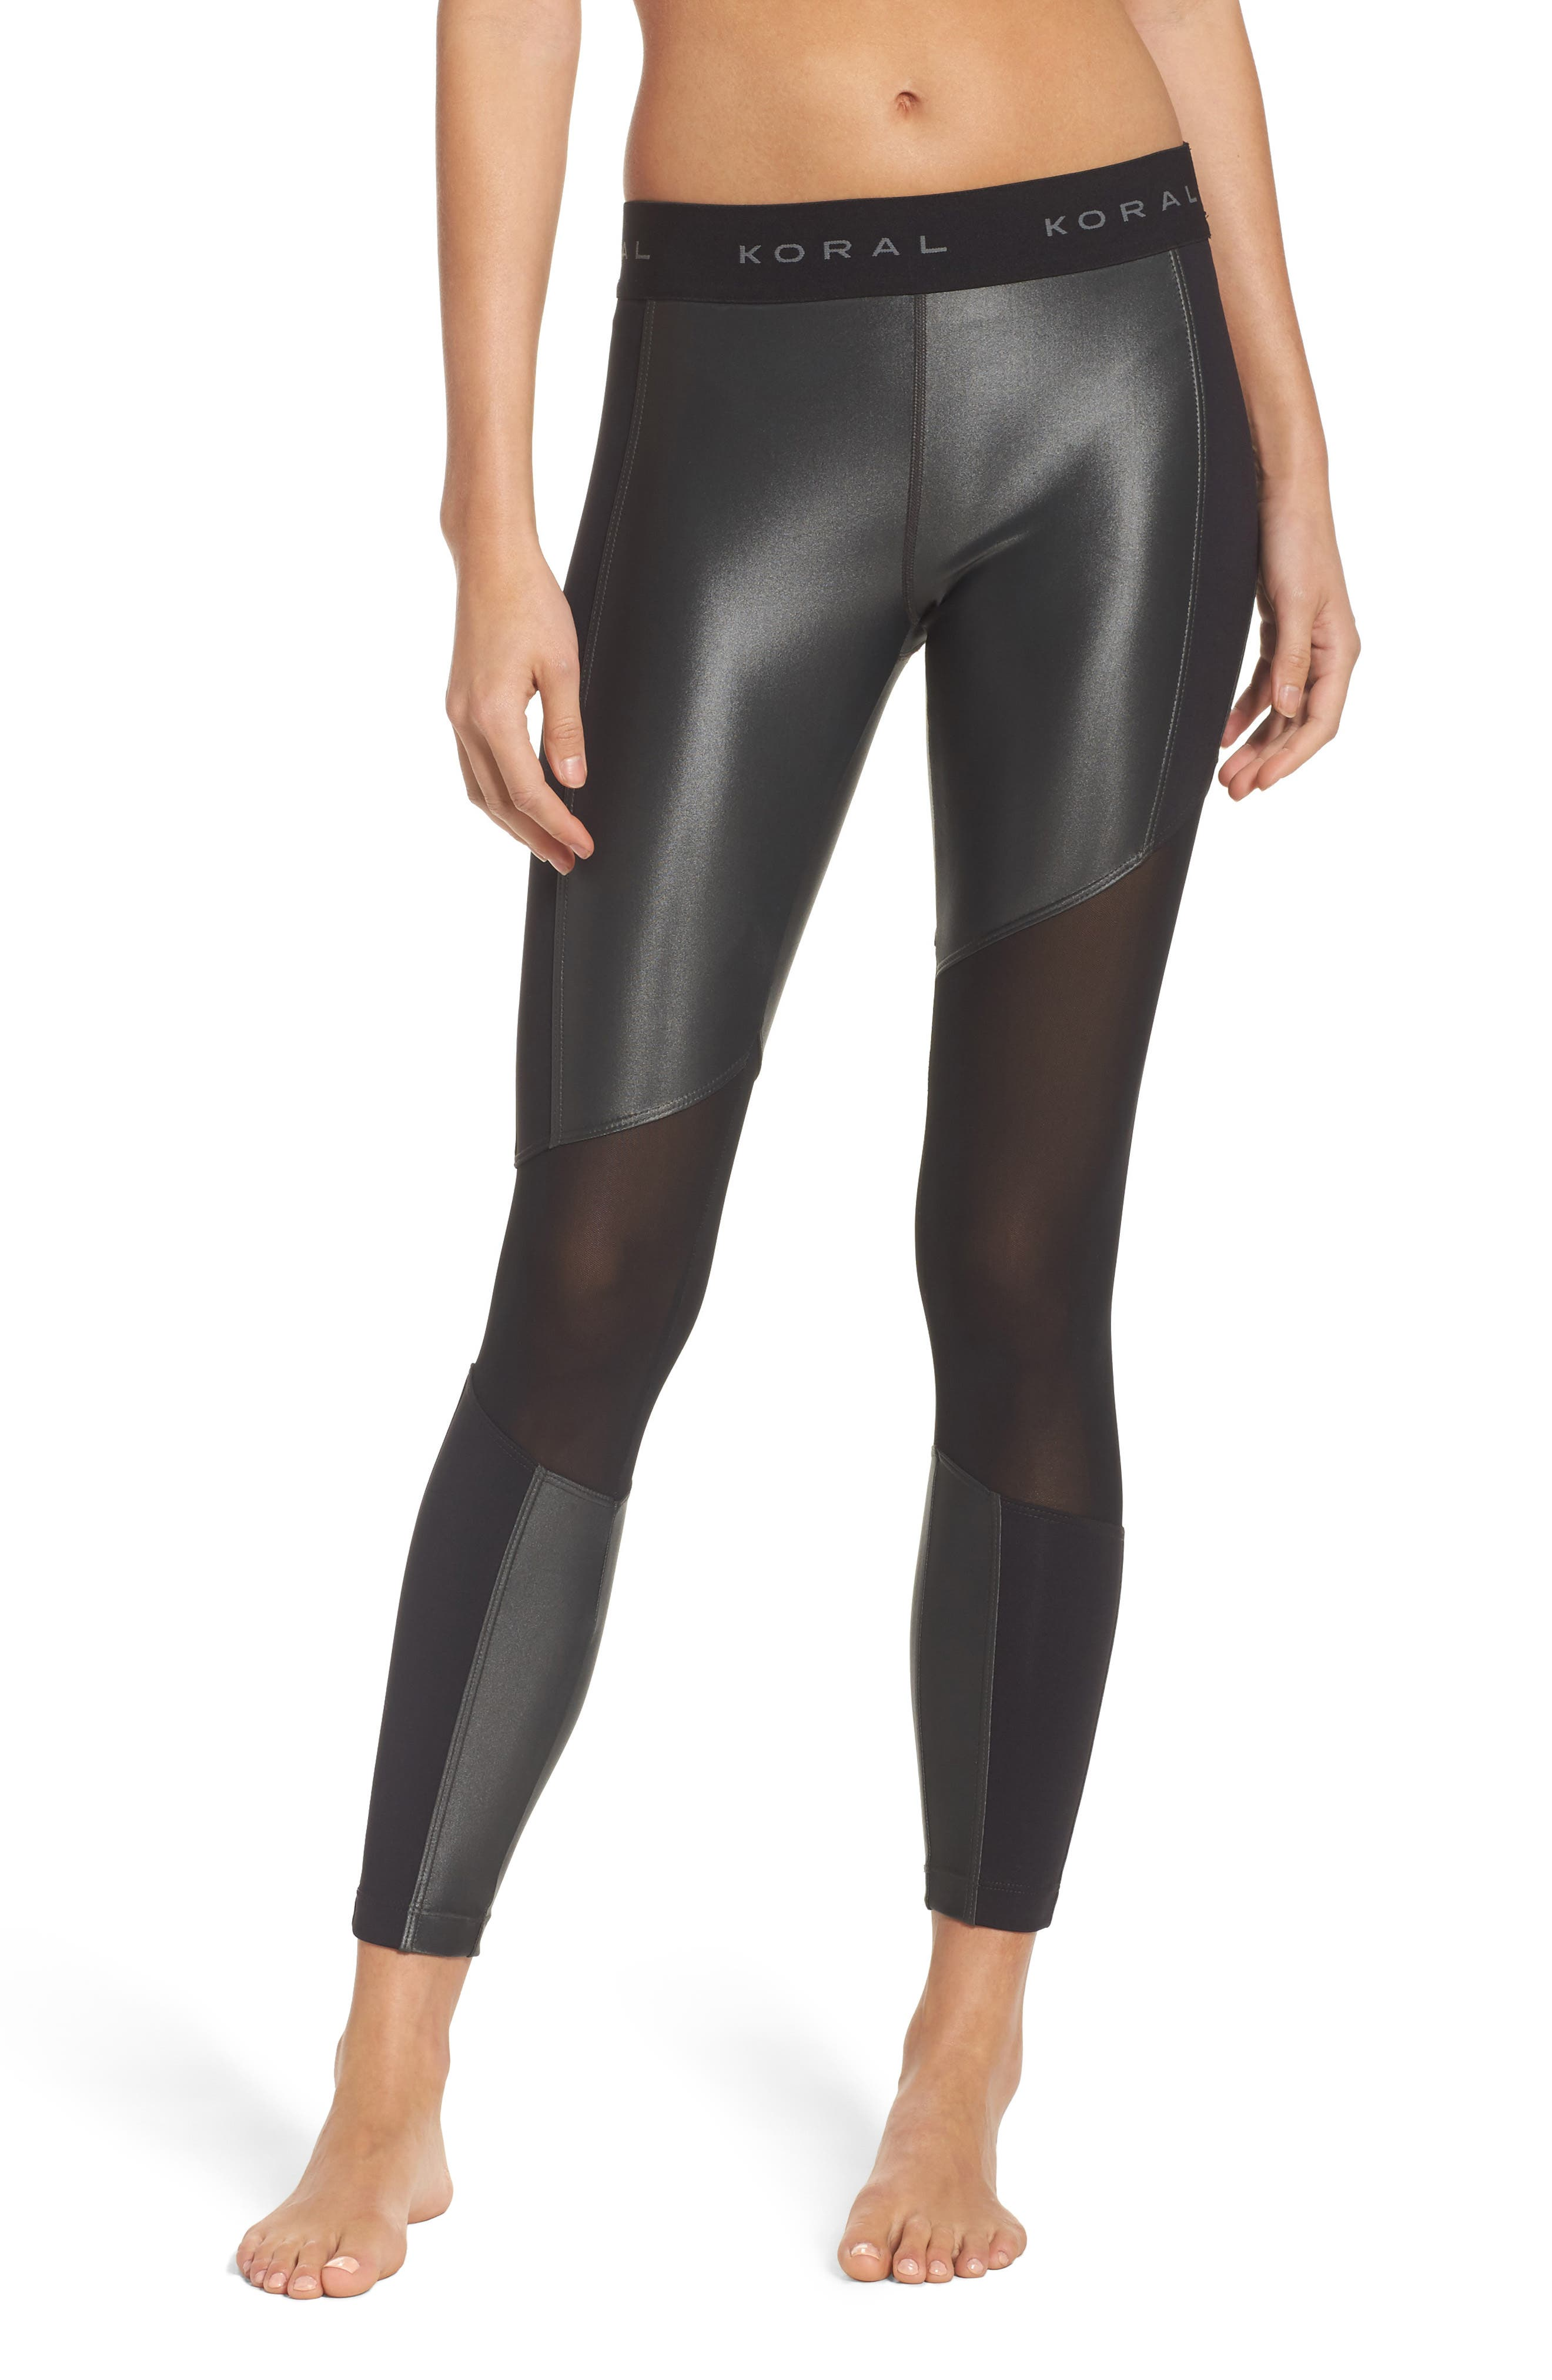 KORAL Restore Leggings